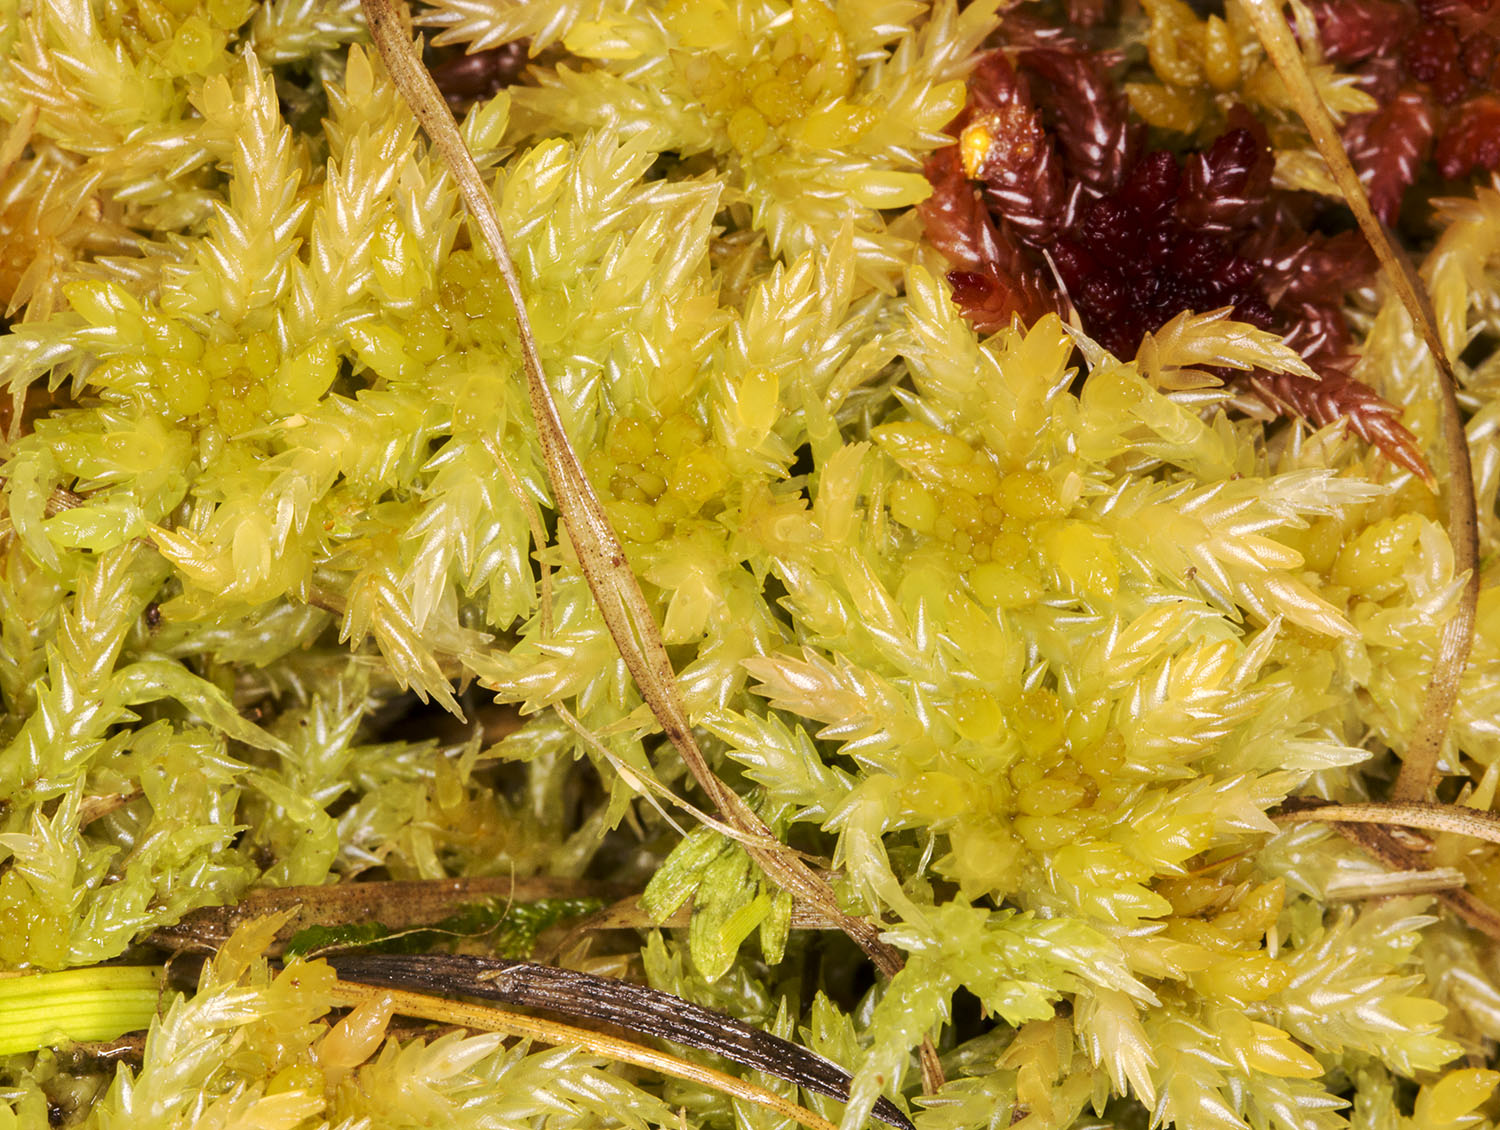 Sphagnum palustre.  Keston Common, 10 December 2014.